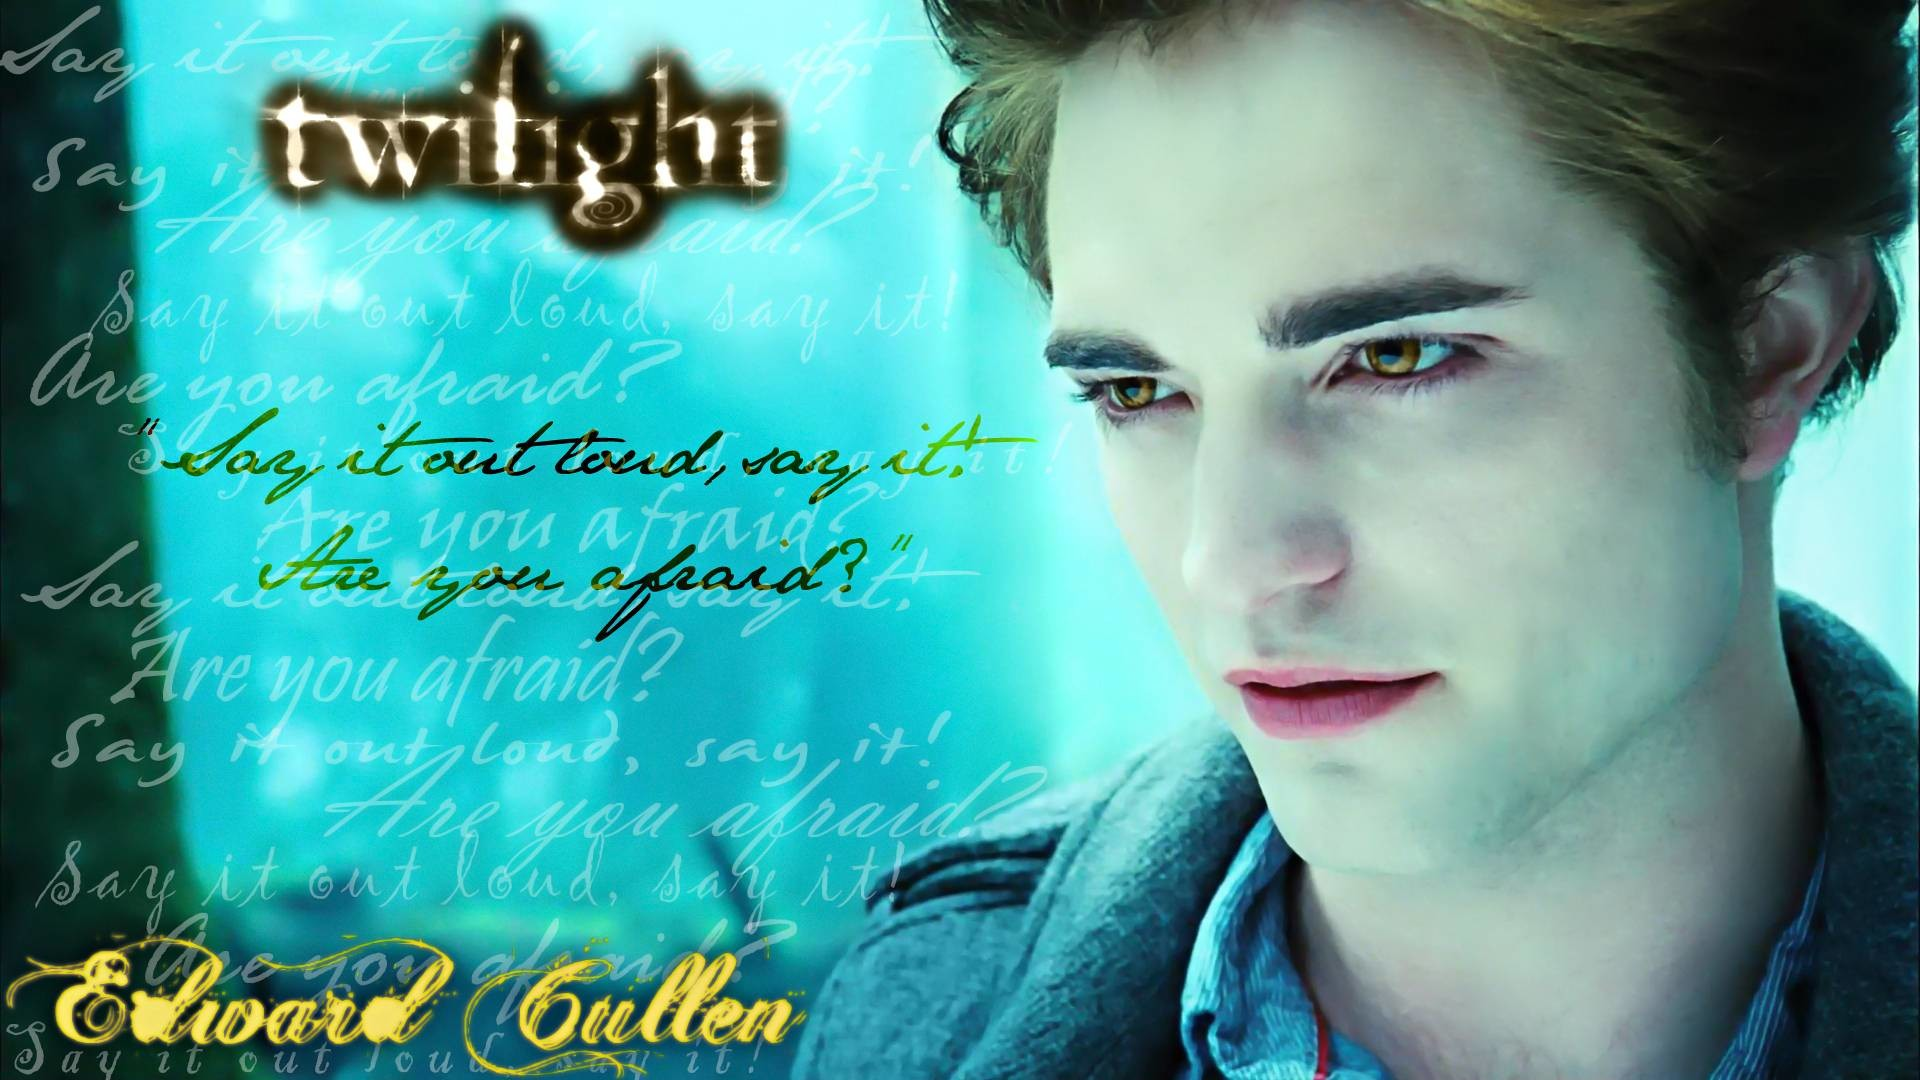 Twilight Edward Cullen Wallpaper (70+ images)